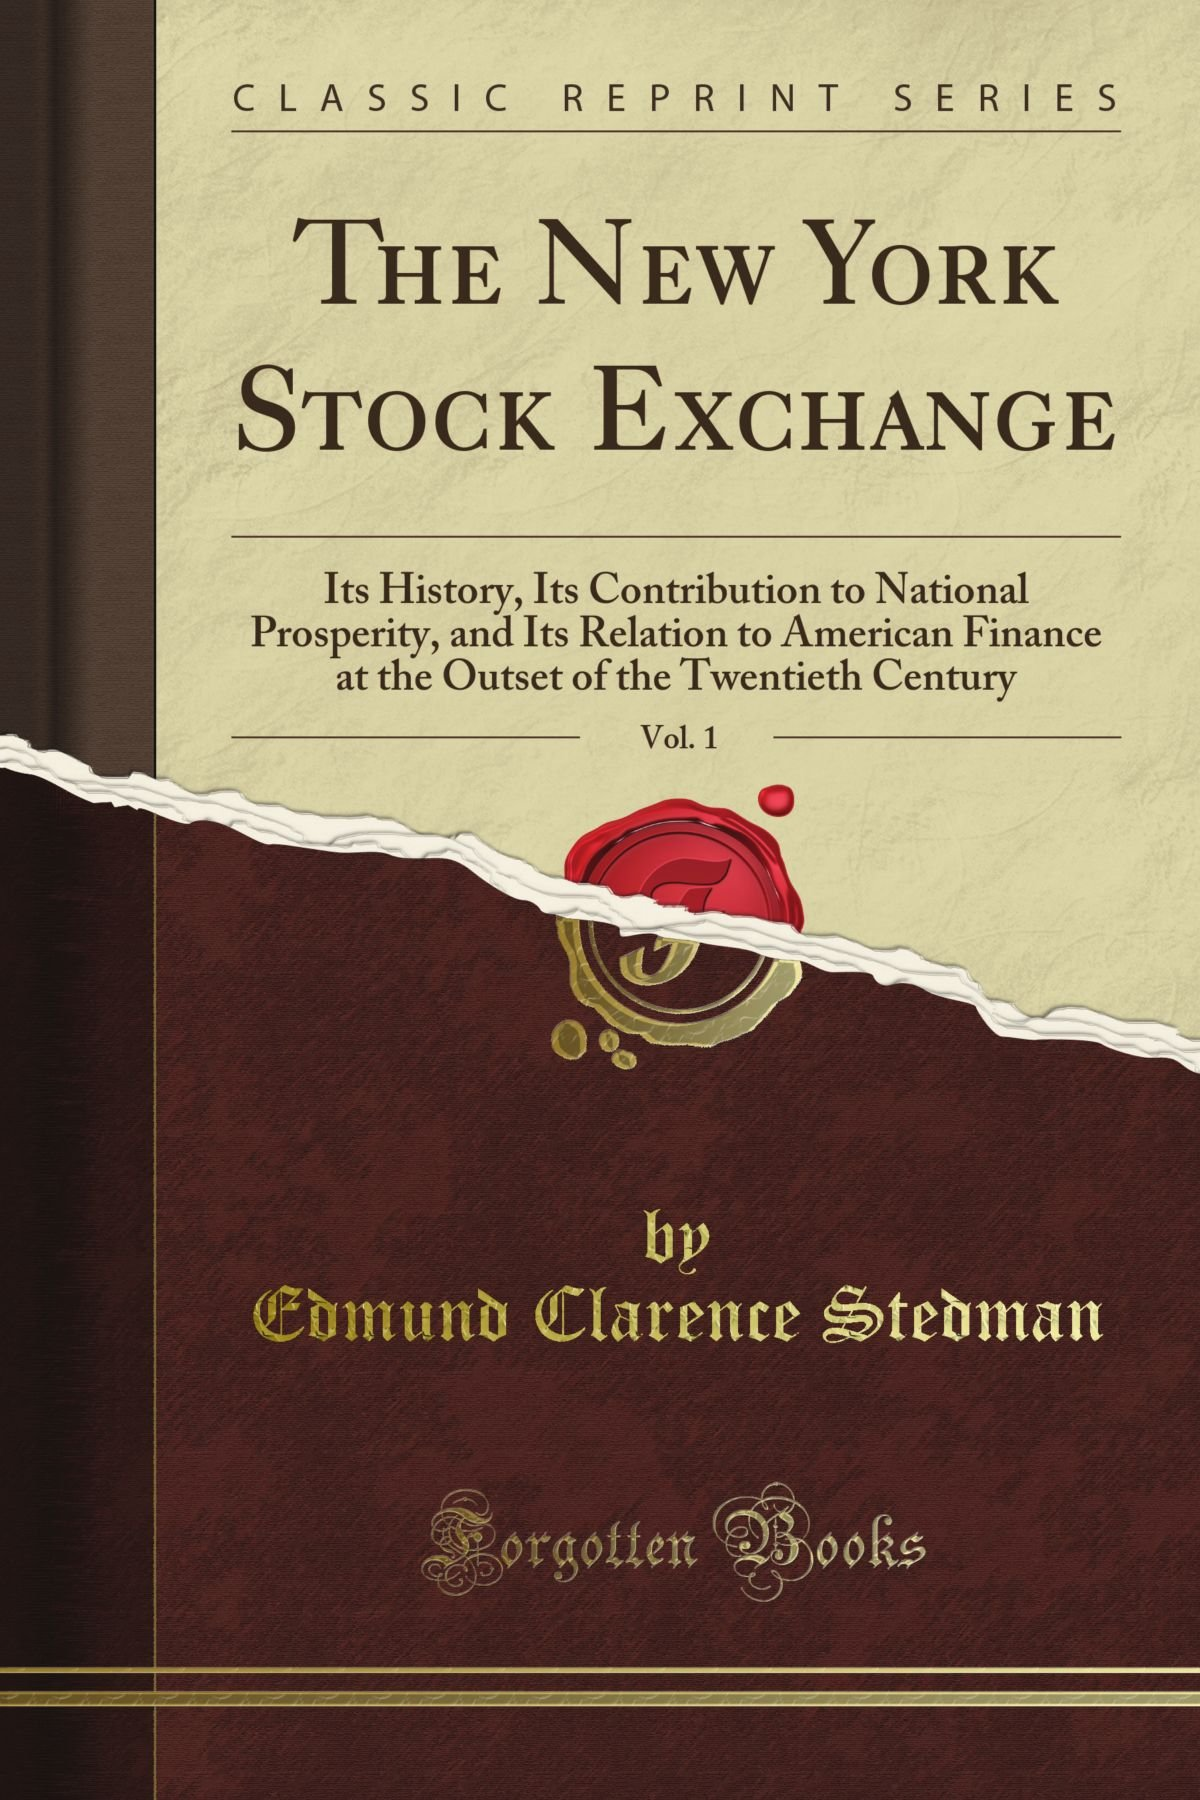 The New York Stock Exchange: Its History, Its Contribution to National Prosperity, and Its Relation to American Finance at the Outset of the Twentieth Century, Vol. 1 (Classic Reprint) PDF